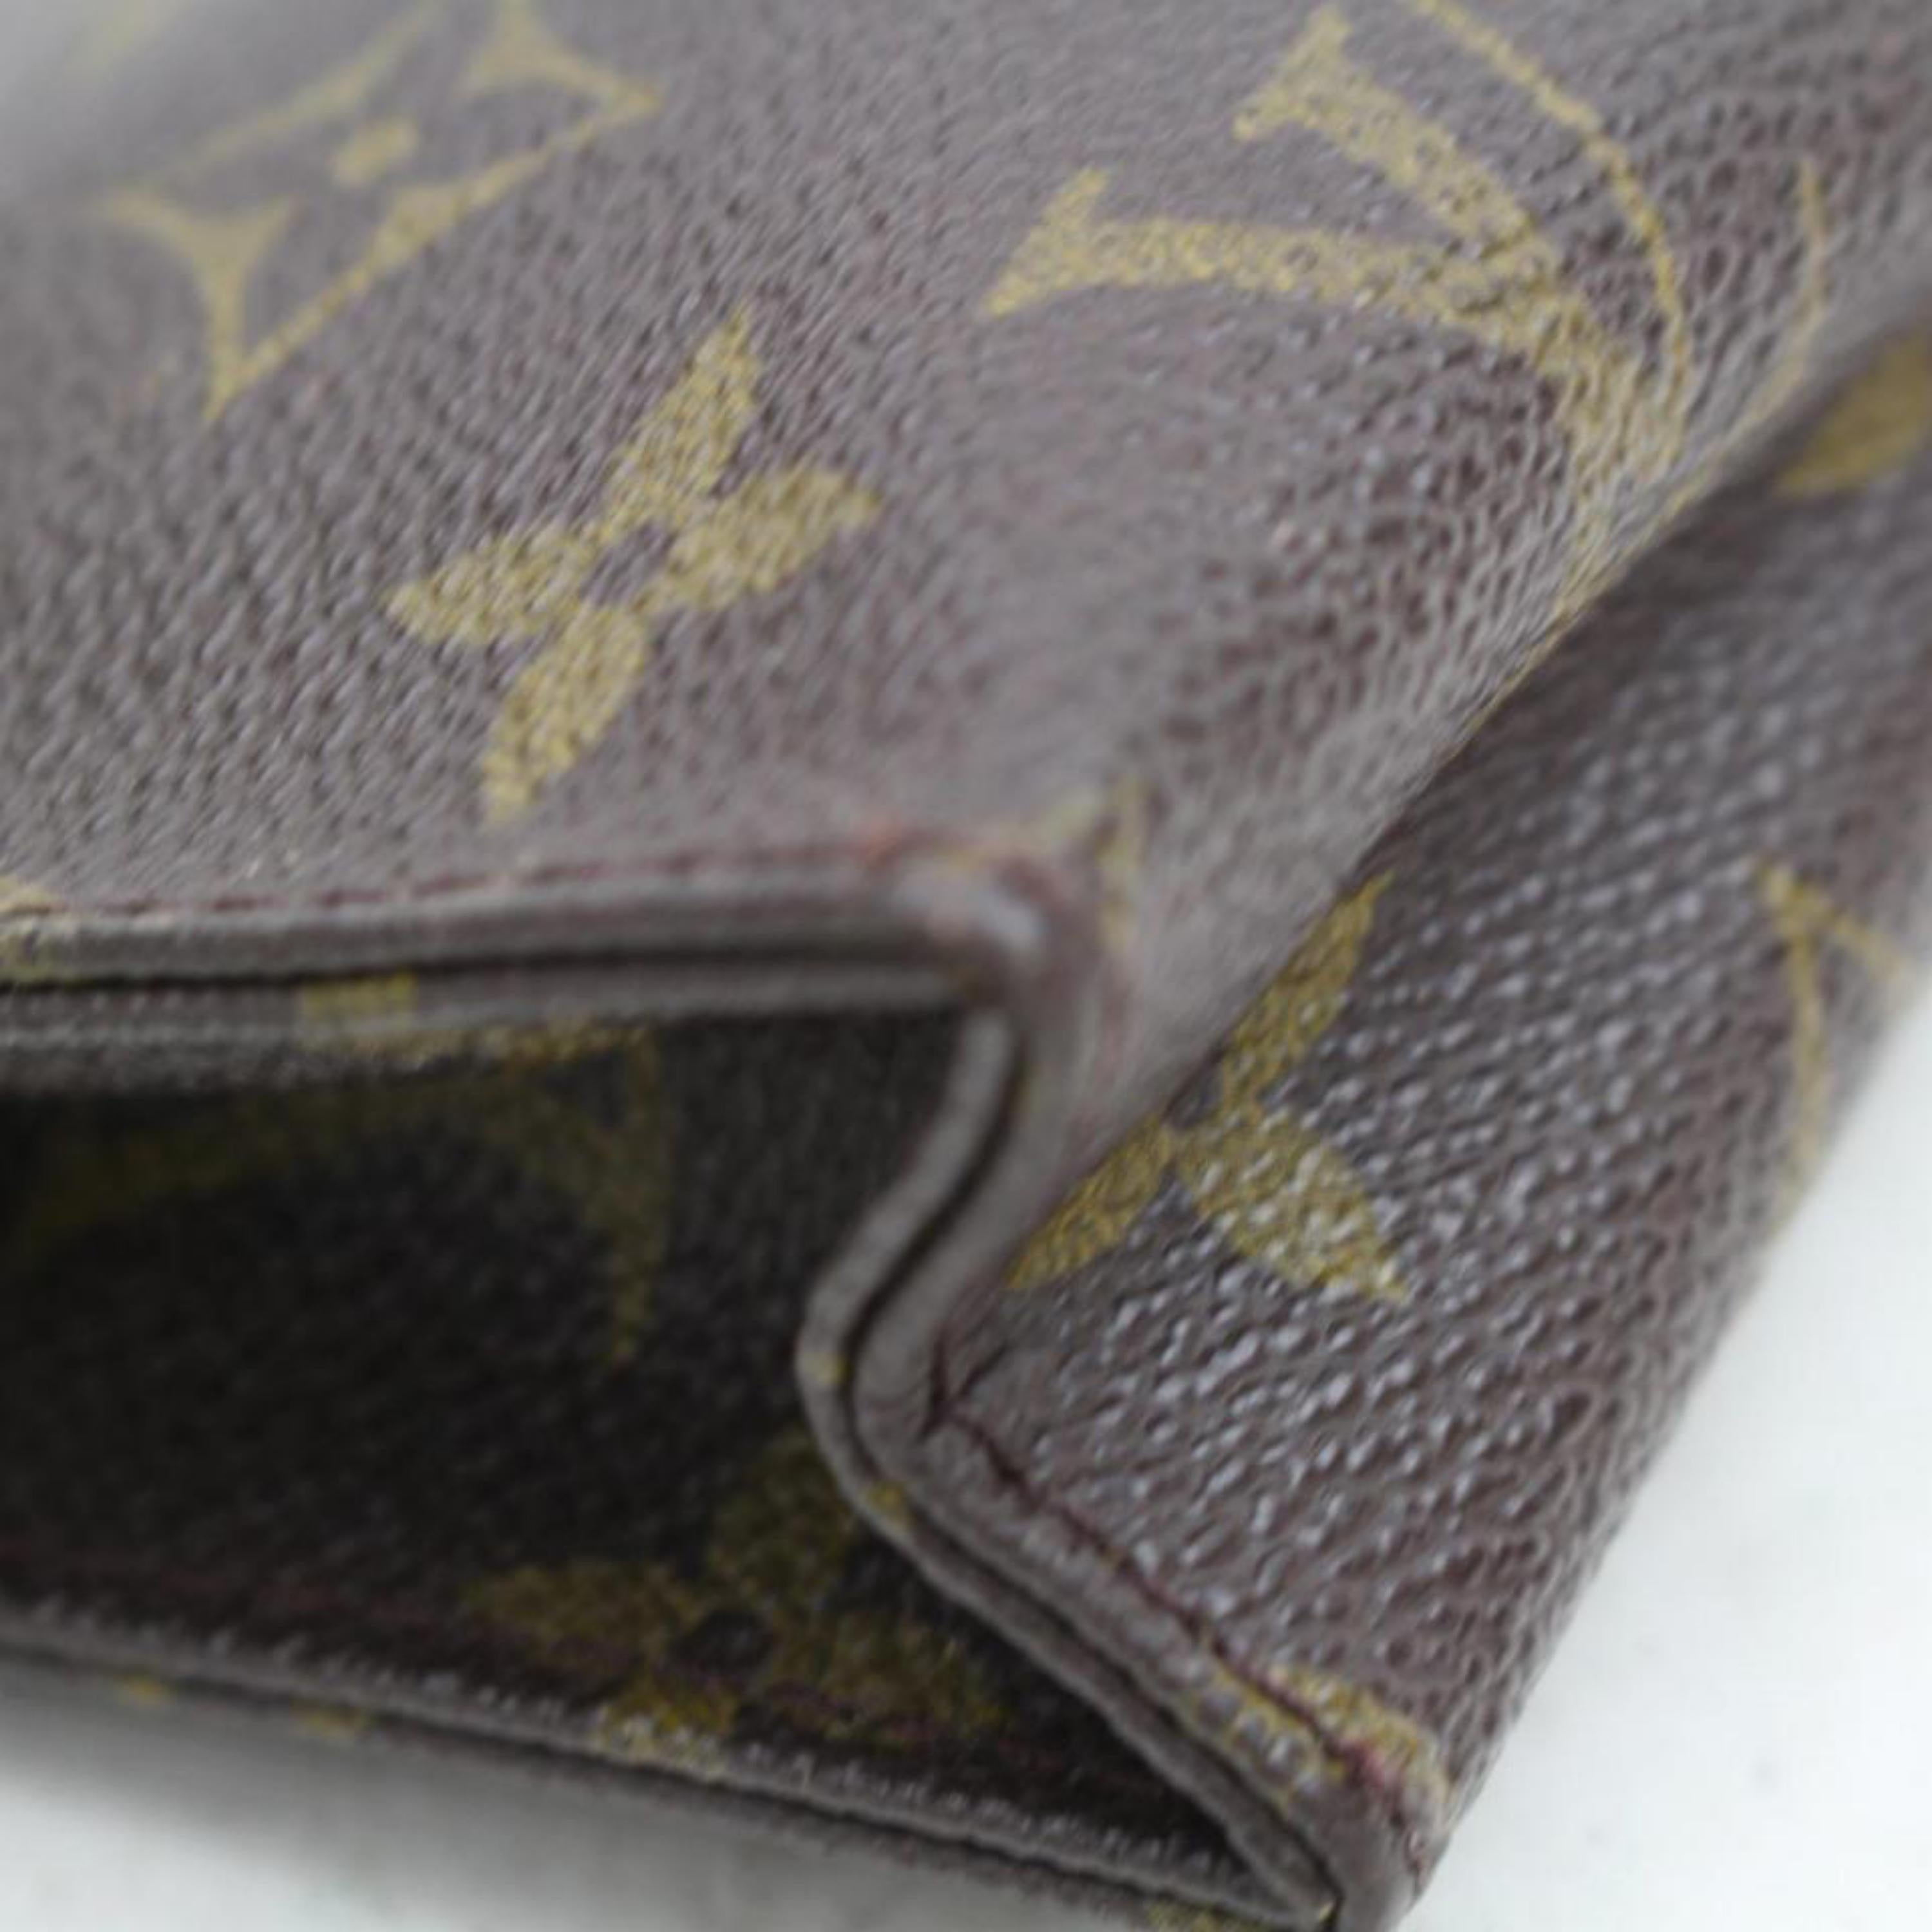 08b2b1430fe0 Louis Vuitton Brown Poche Toiletry Pouch 15 Toilette 868430 Cosmetic Bag  For Sale at 1stdibs